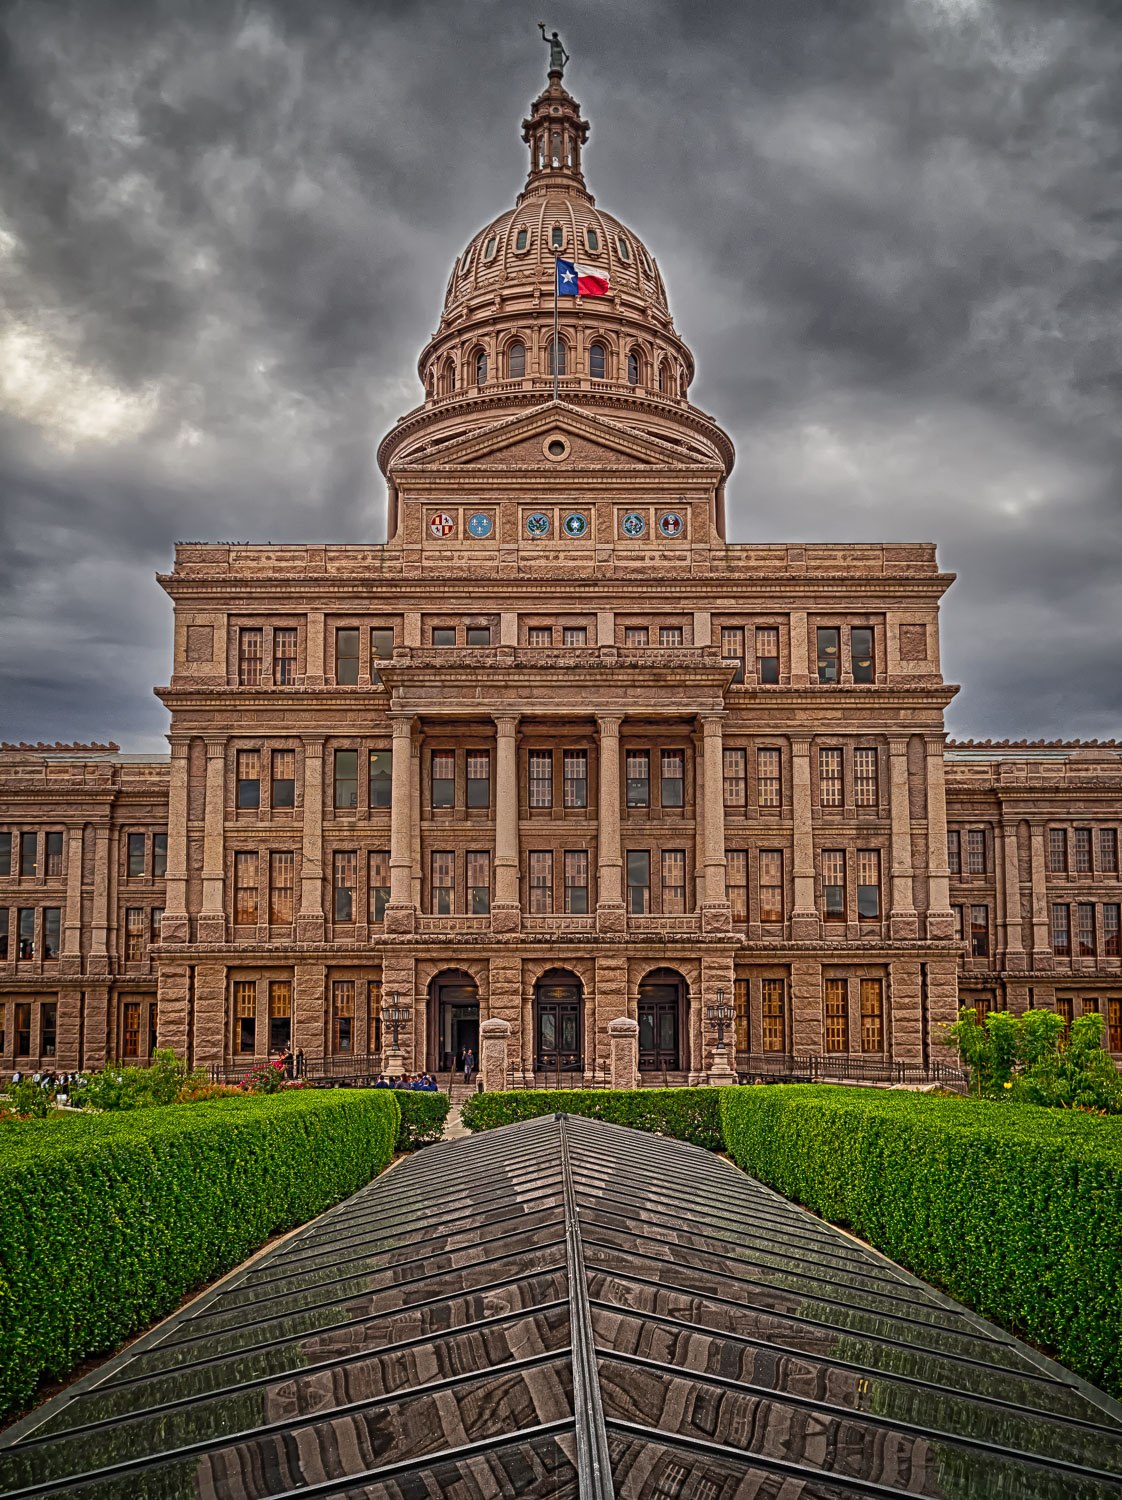 A slightly over the top HDR image of the North end of the Texas State Capitol